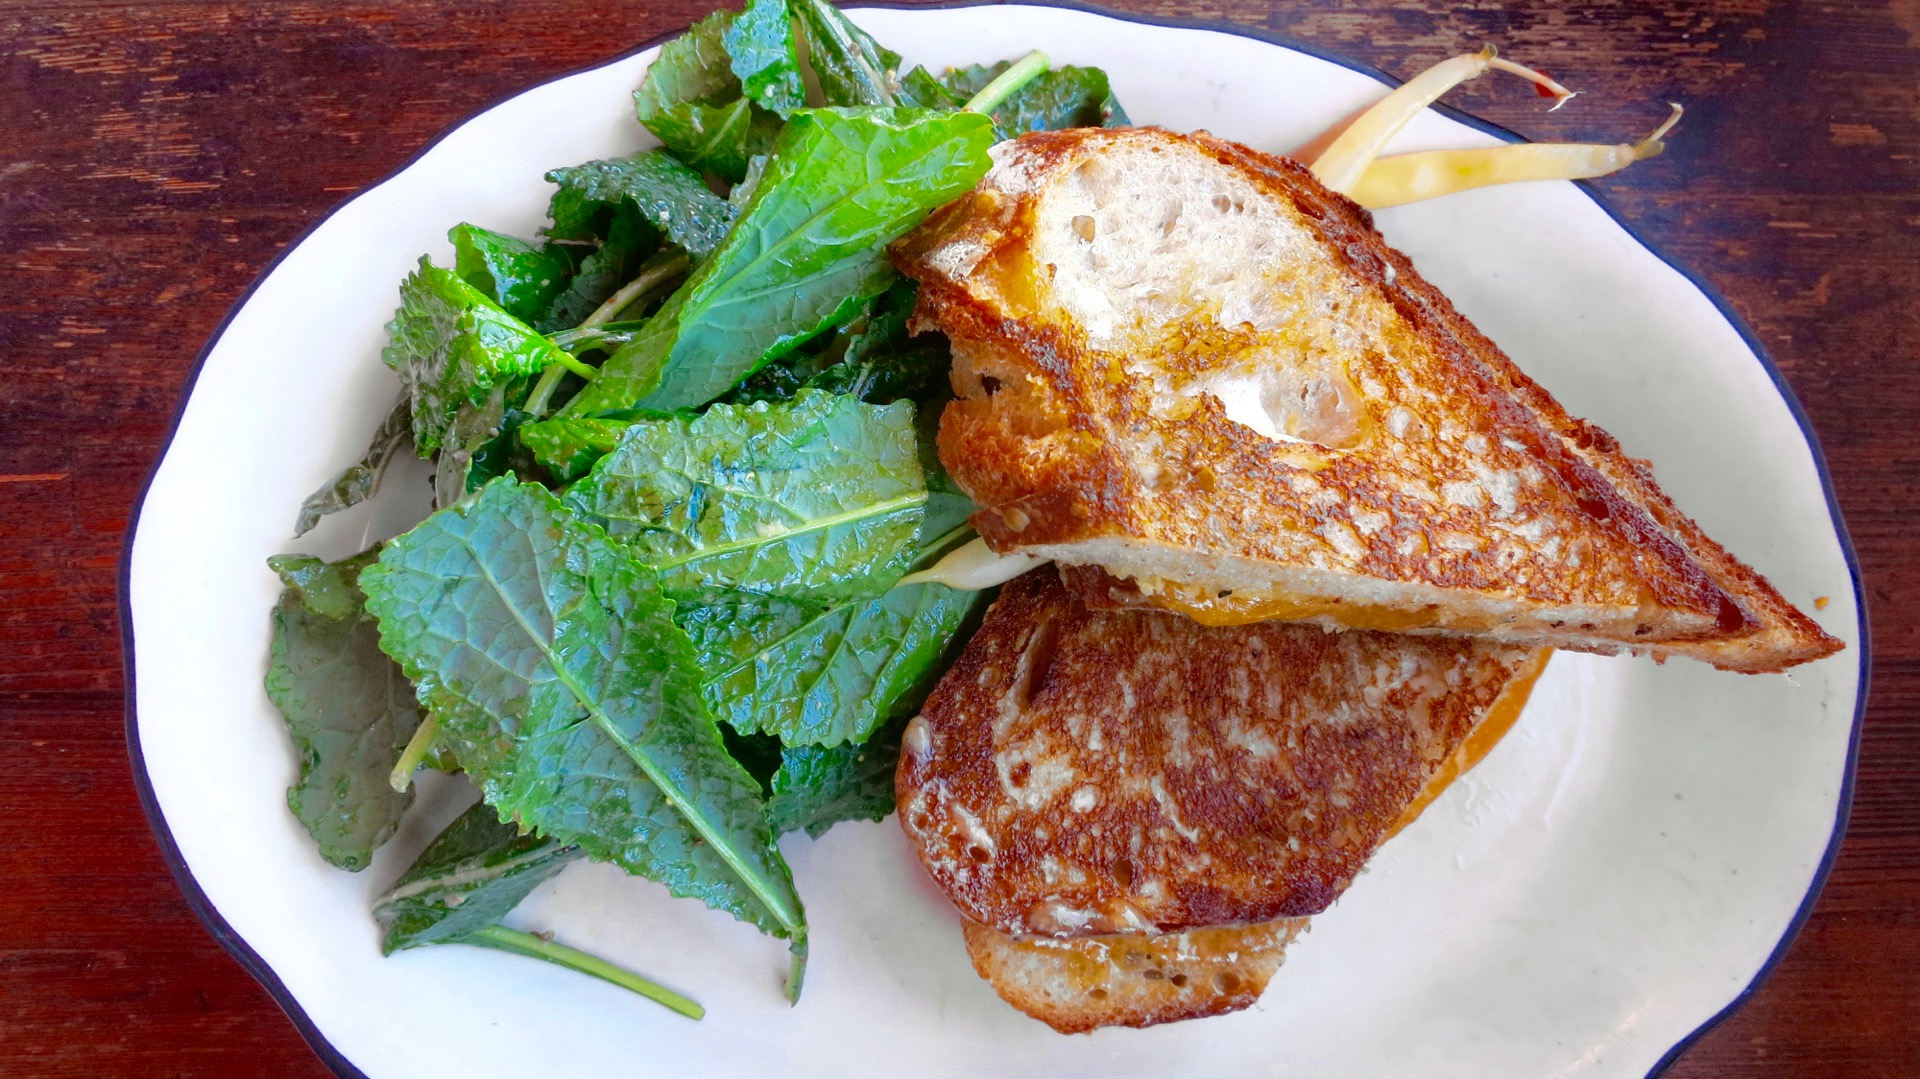 Grand Lake Kitchen's grilled cheddar cheese sandwich on sourdough is simple yet satisfying.